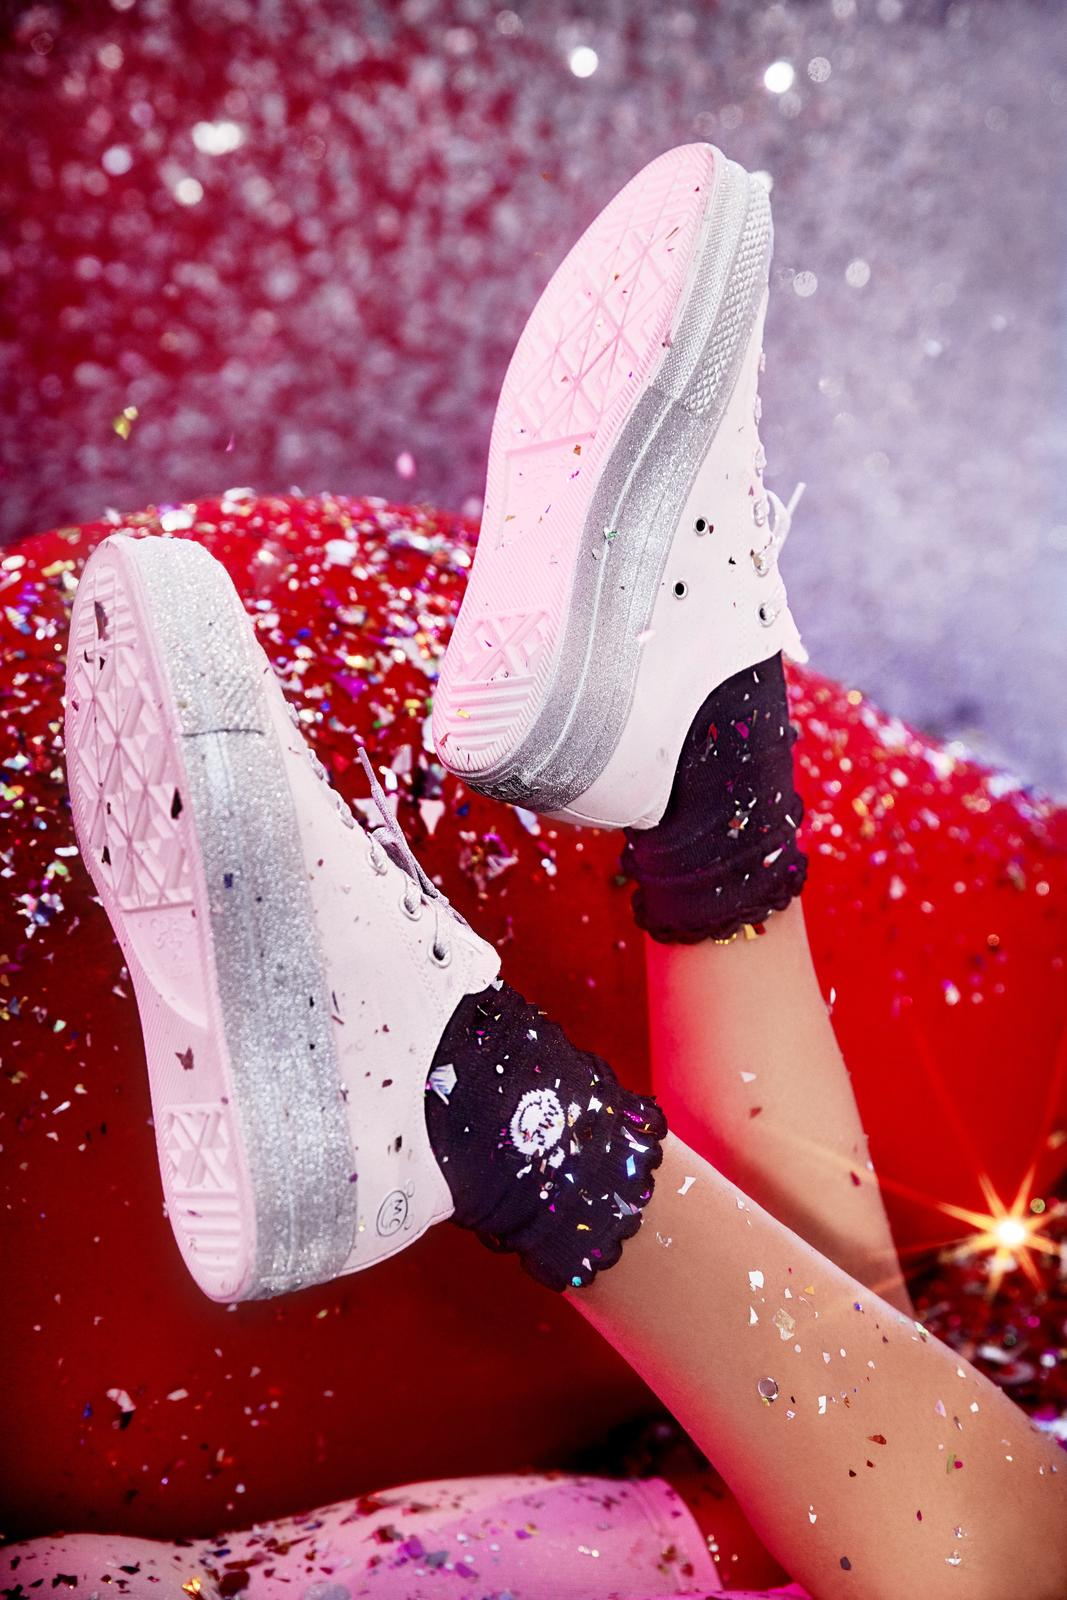 f10af169cfab81 Introducing the Miley Cyrus Converse Collection - Nike News